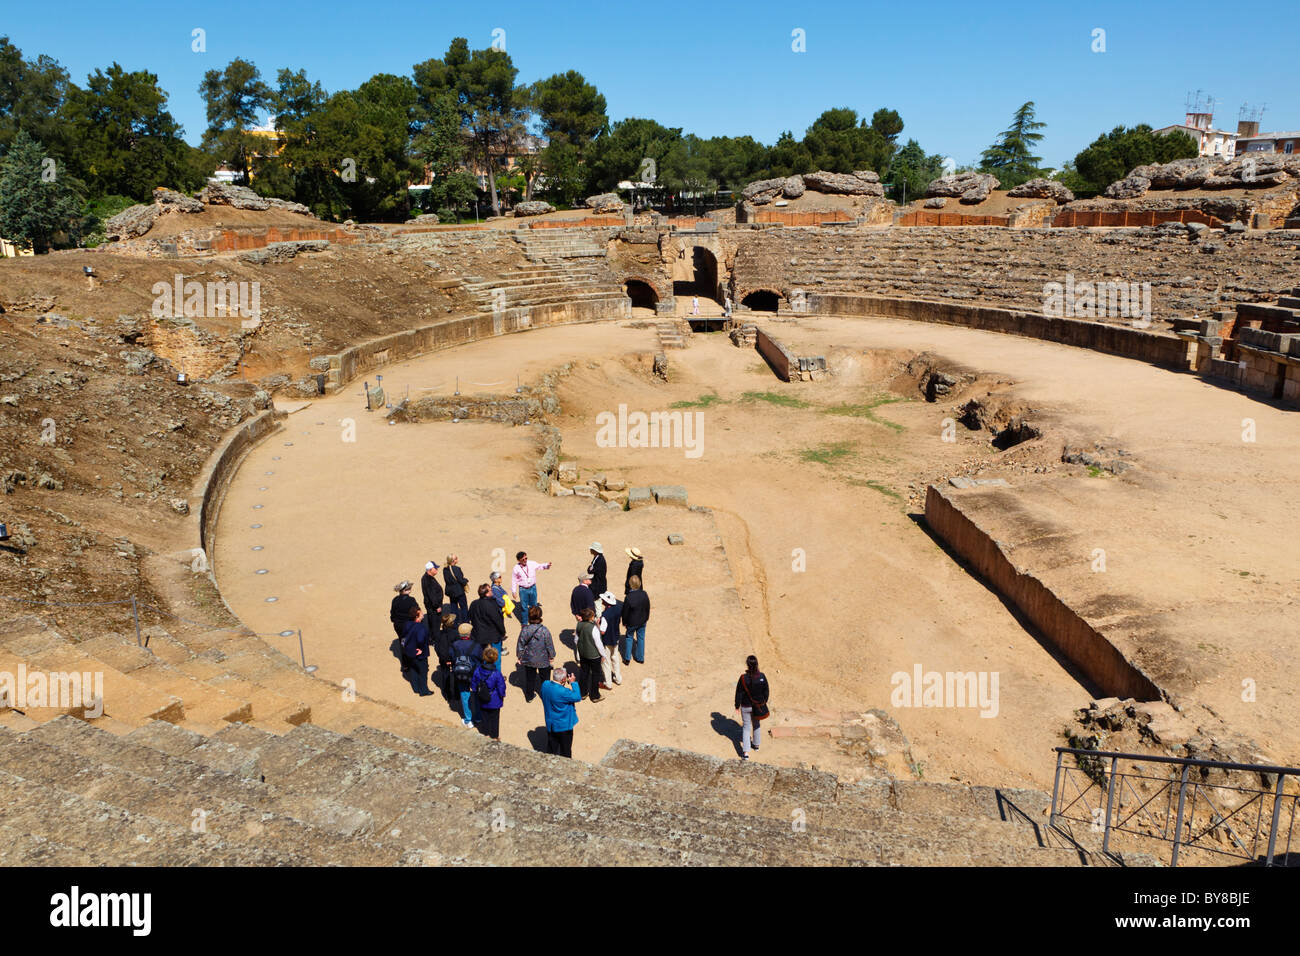 Merida, Badajoz Province, Spain. The first century BC Roman amphitheatre. Stock Photo